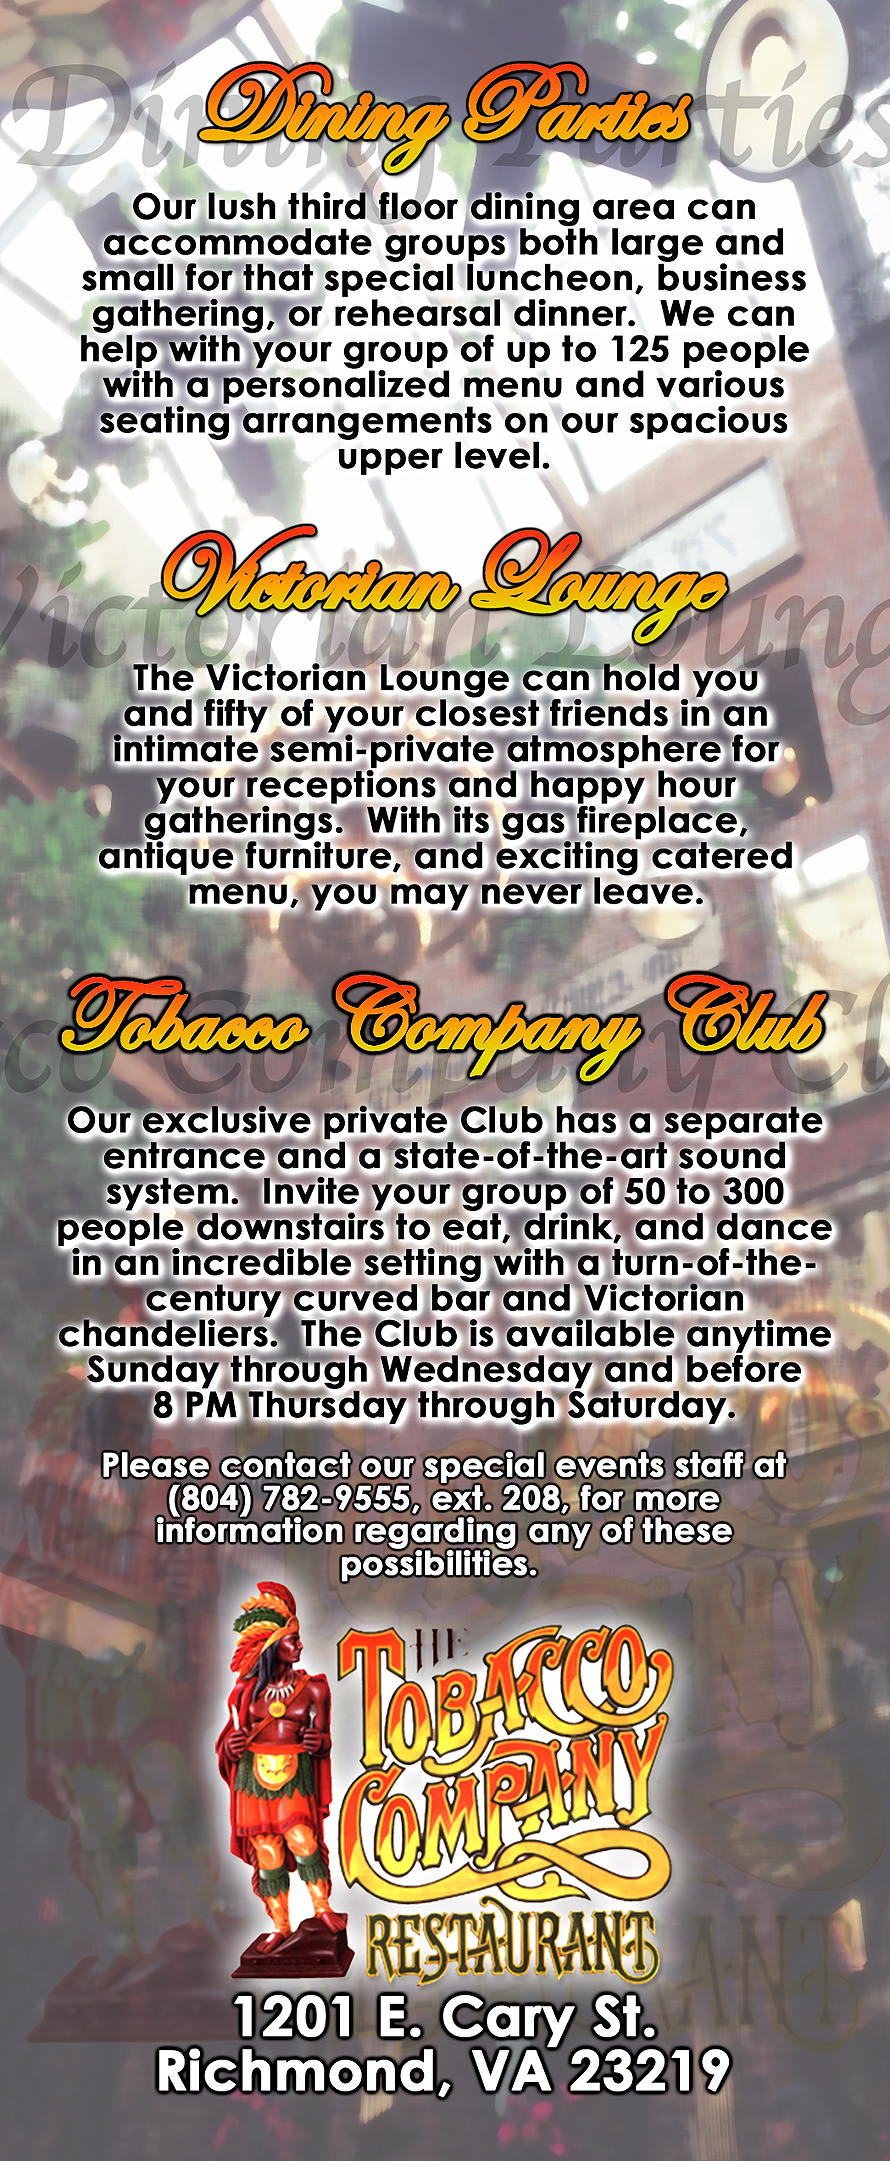 Tobacco Company Restaurant Mail Out